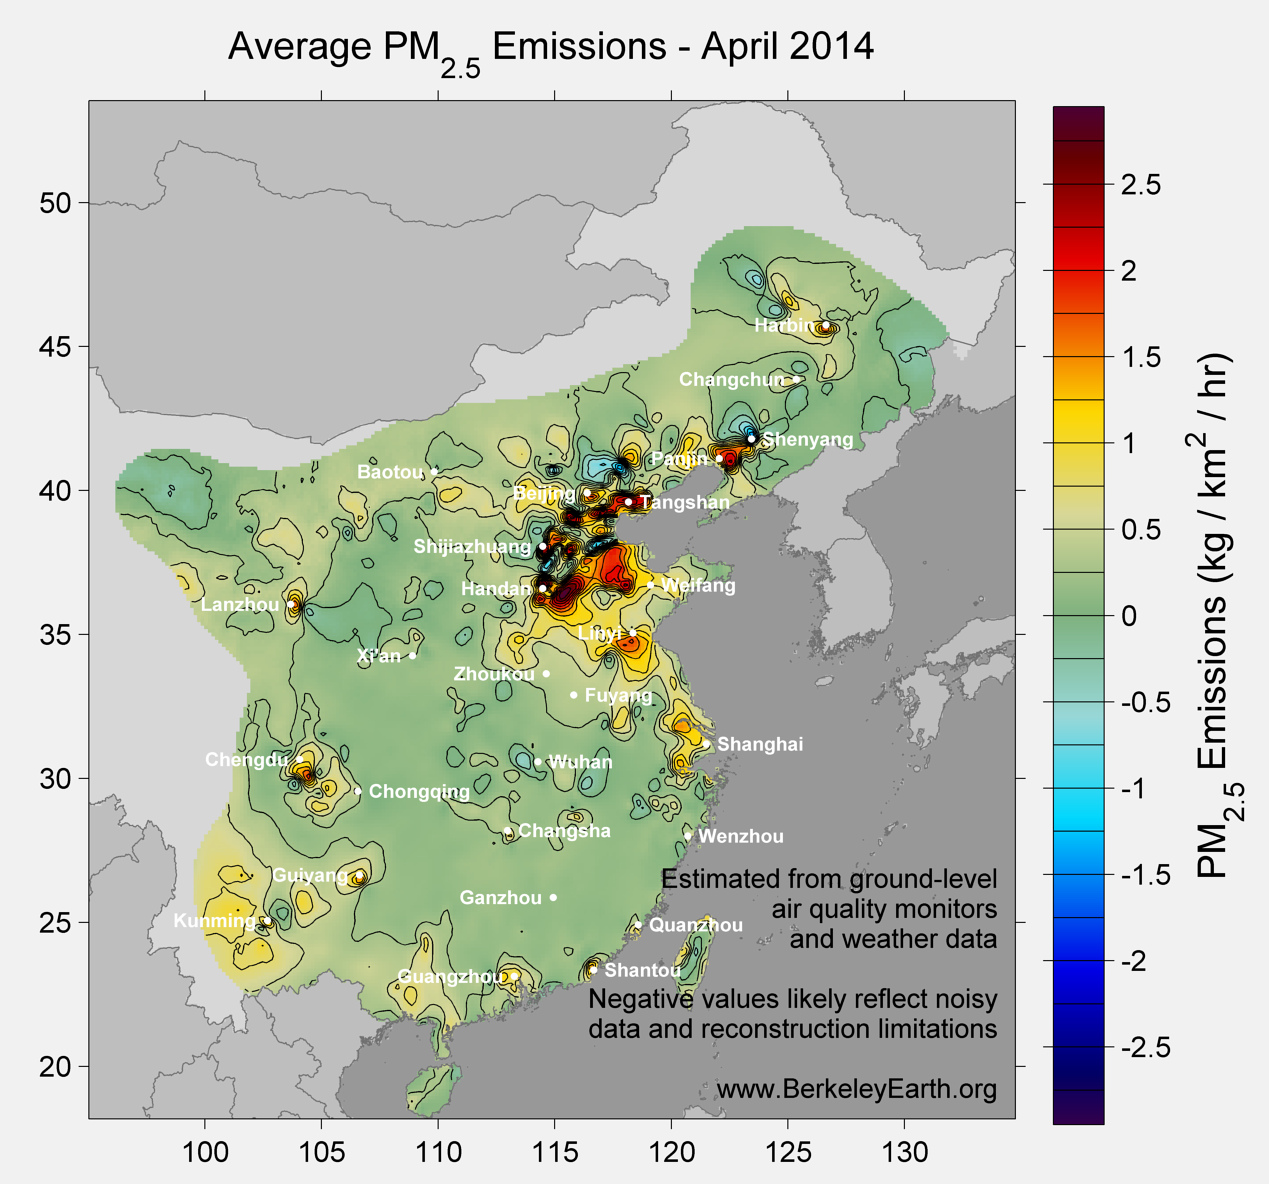 China_pm25_Emissions_April